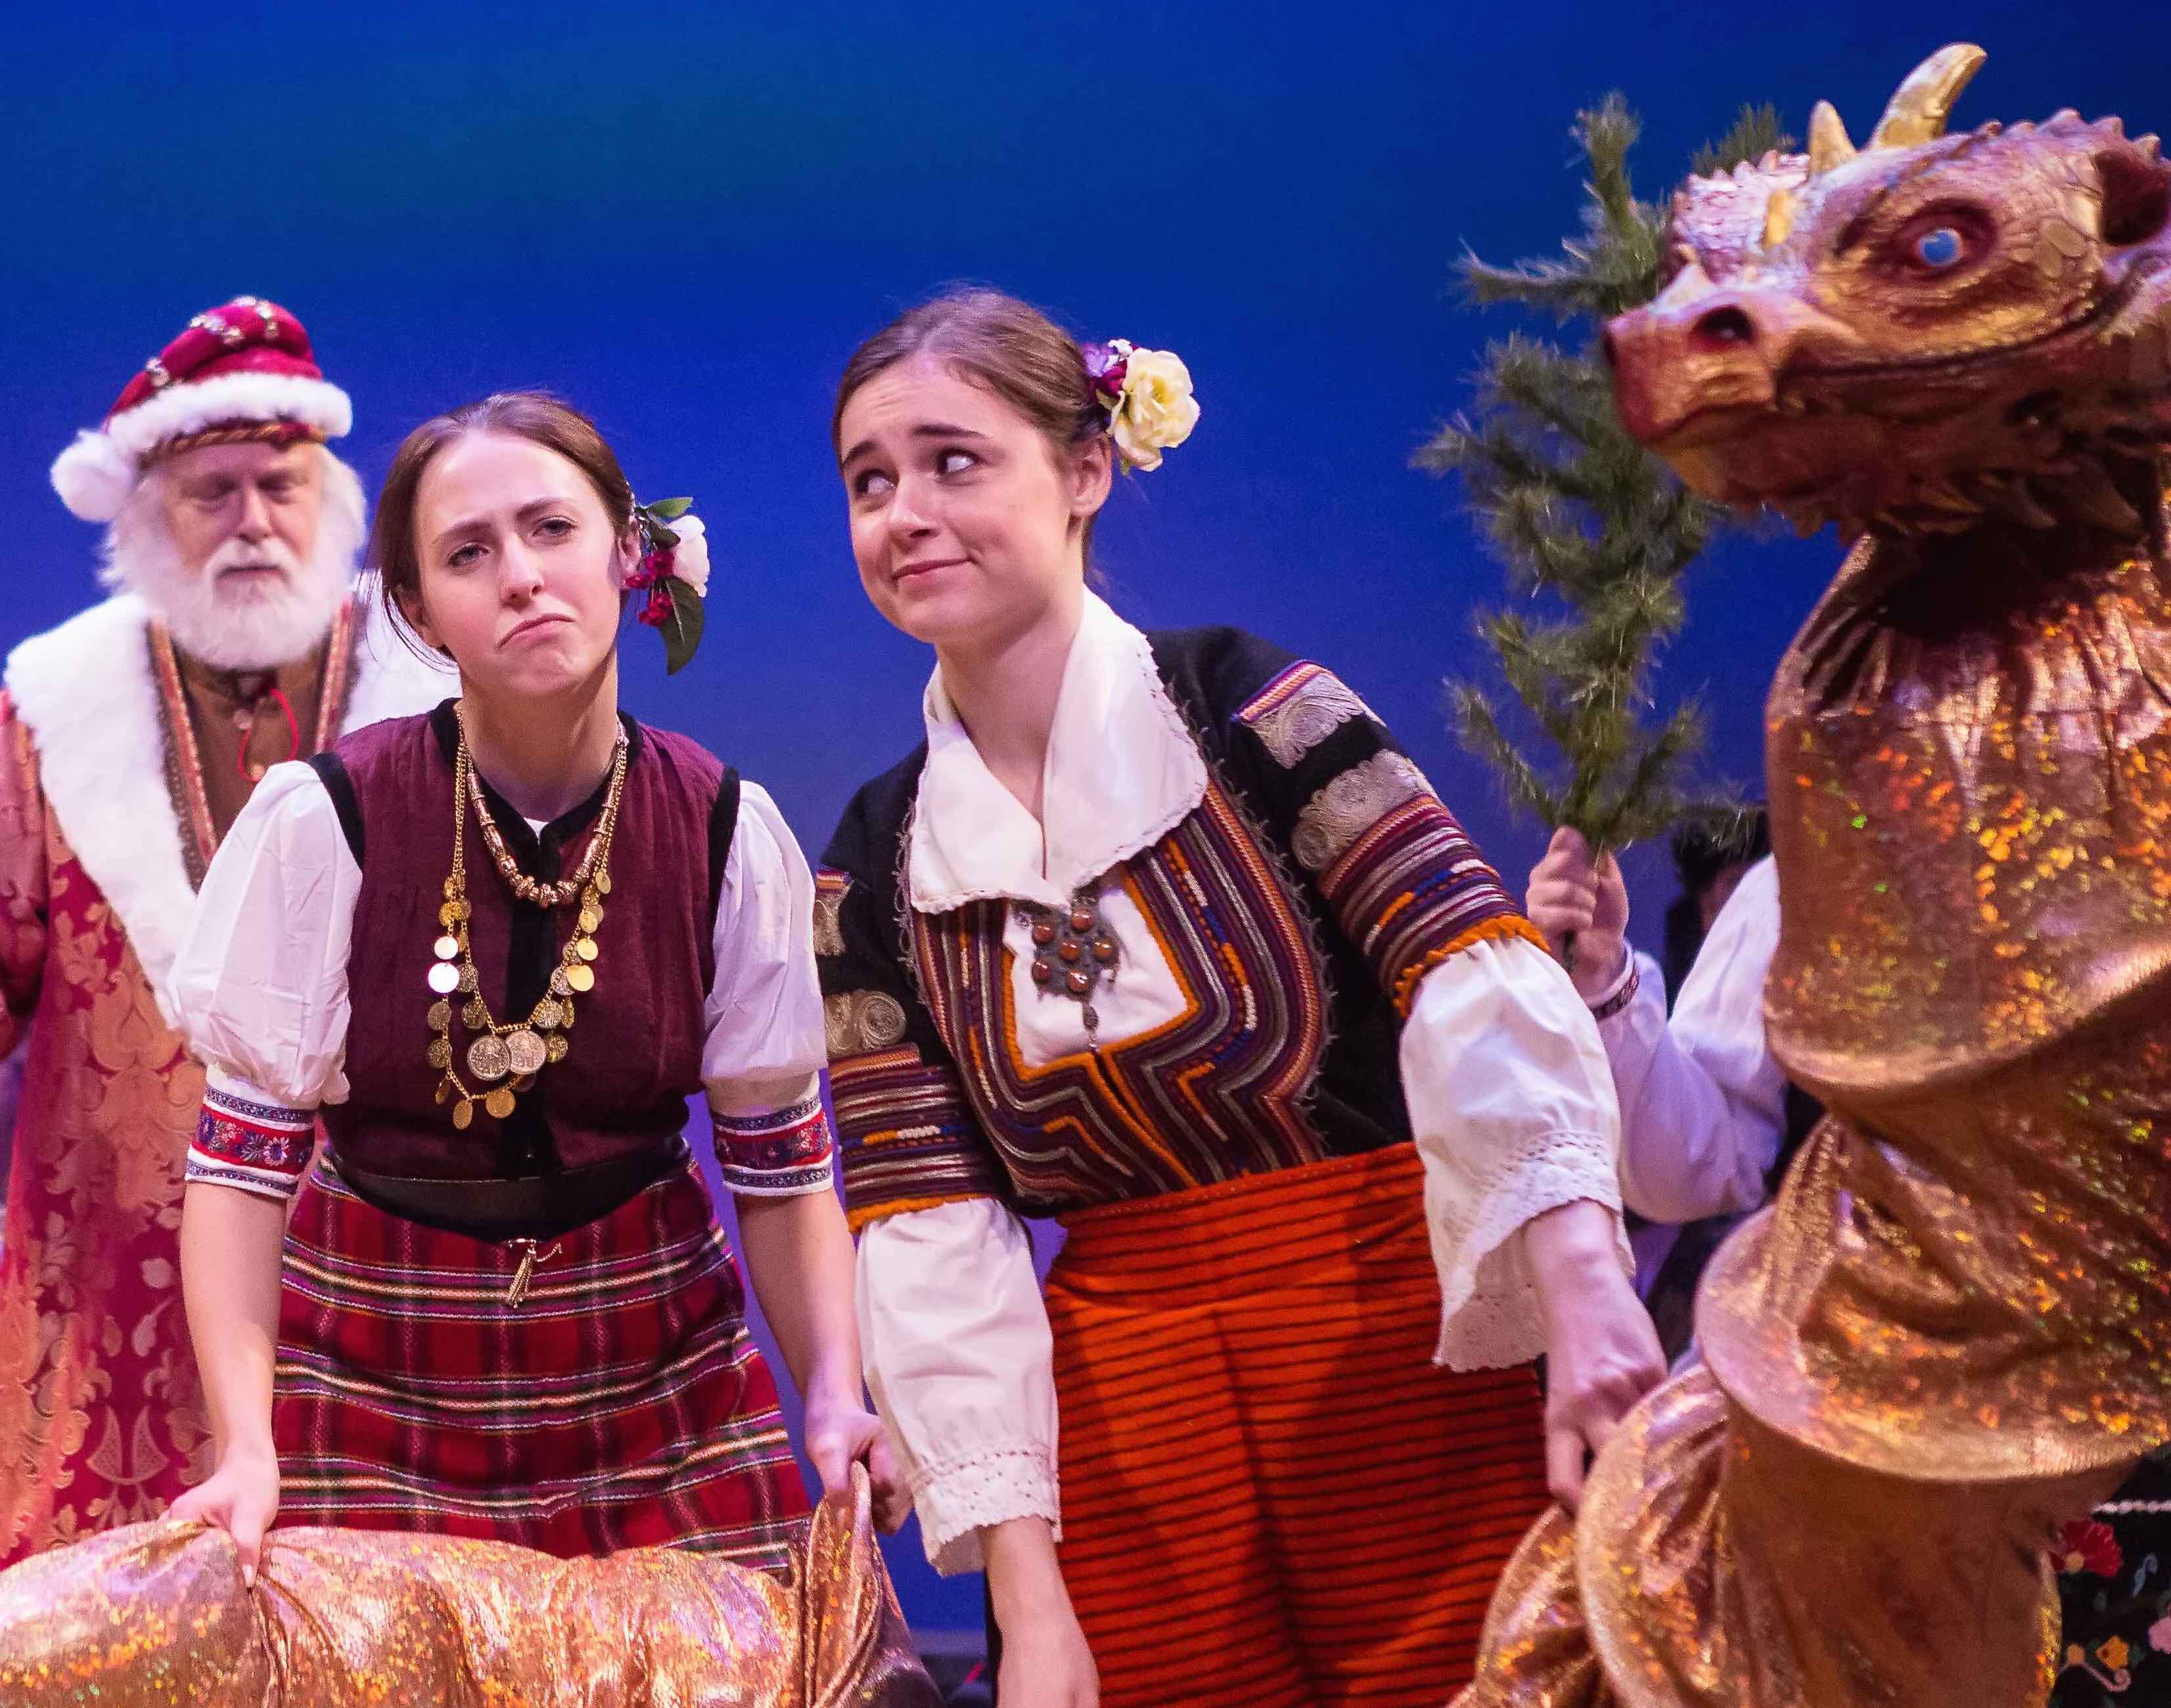 clare in the 2013 teen chorus in our balkan christmas revels - The Christmas Revels